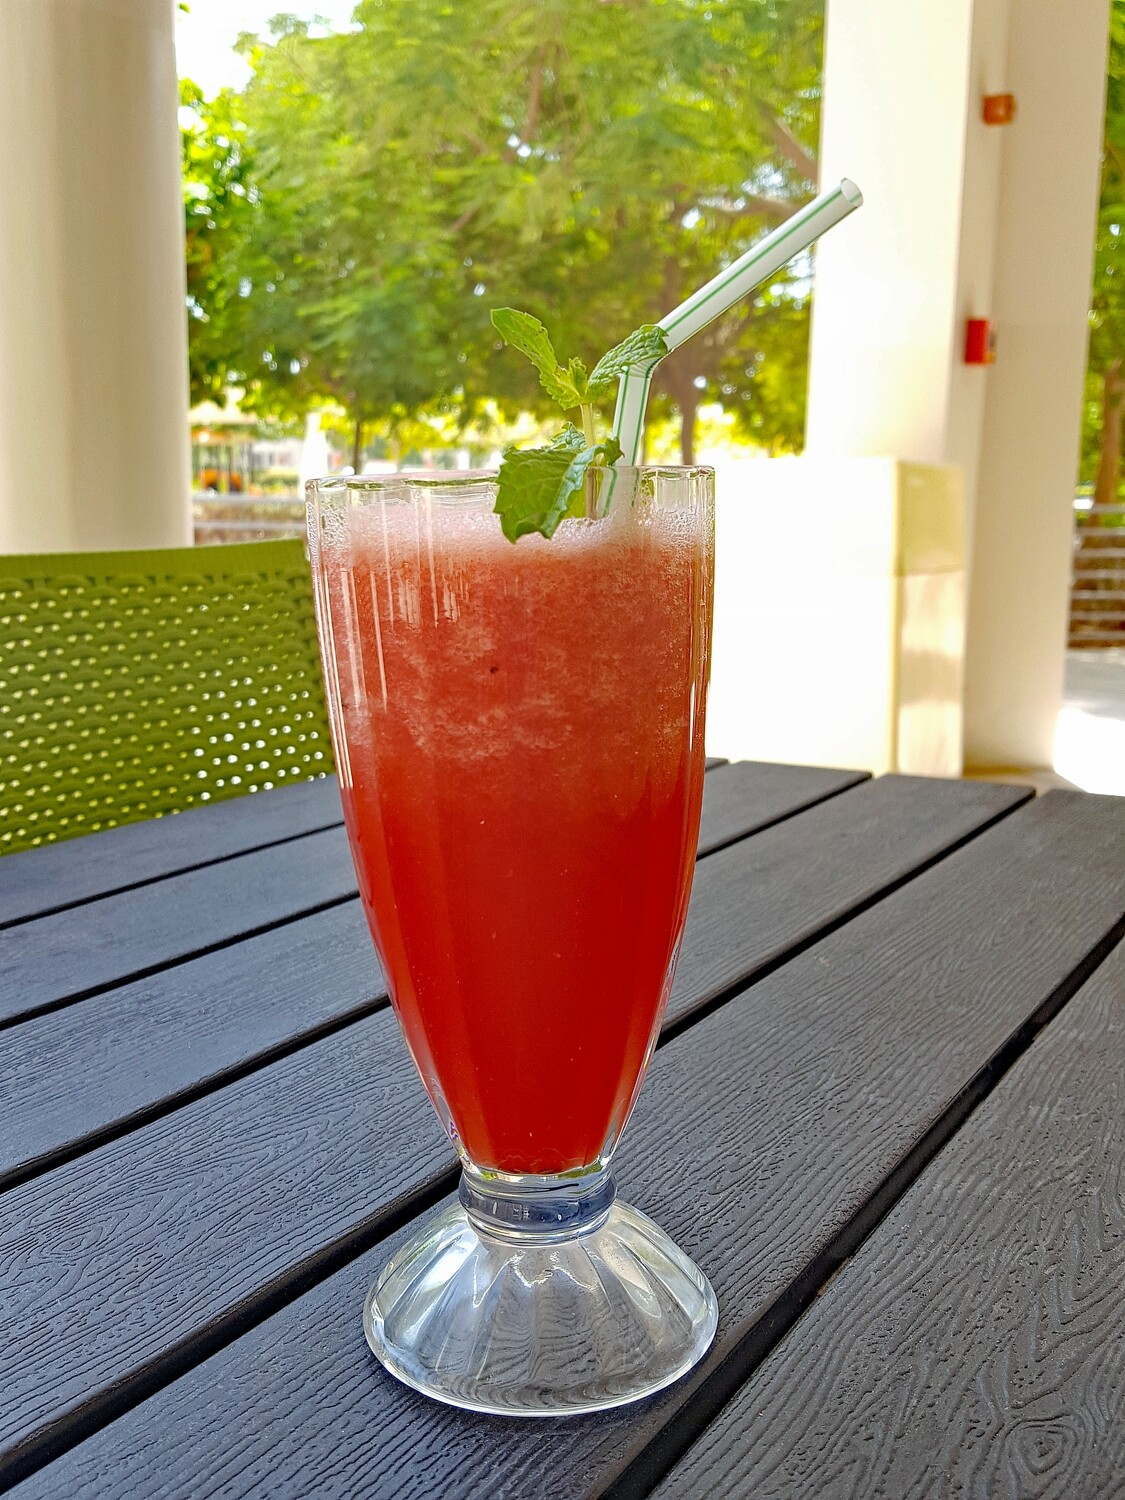 (NUOC DUA HAU) Watermelon Juice